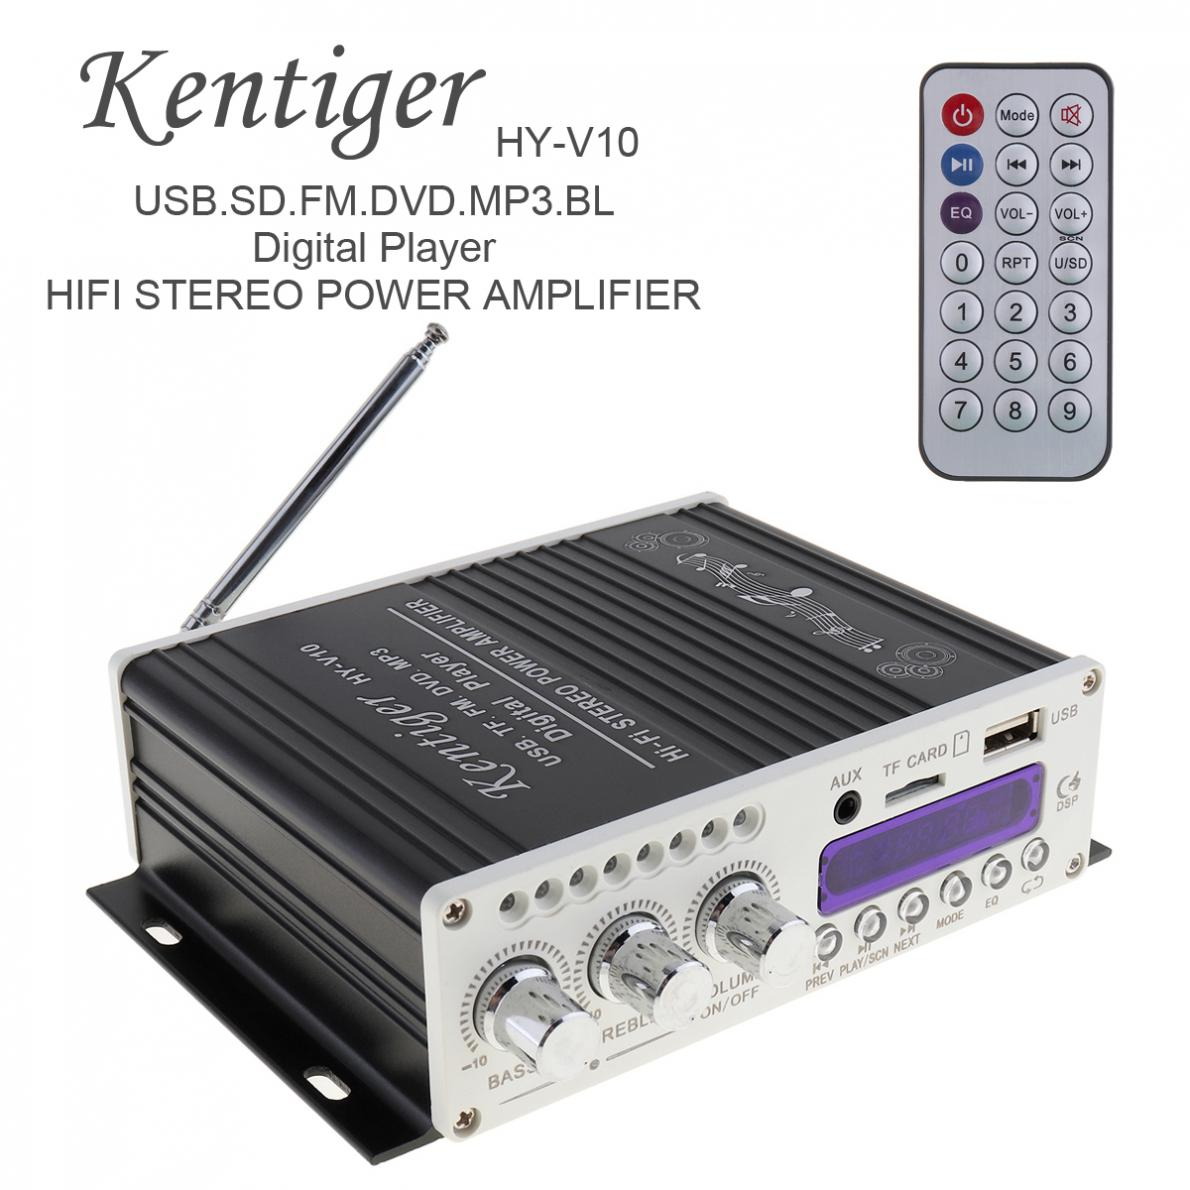 Kentiger <font><b>HY</b></font>-<font><b>V10</b></font> DC 12V 20W x 2 2CH HI-FI Bluetooth Car Audio Power Amplifier FM Radio Player Support SD USB DVD MP3 Input image